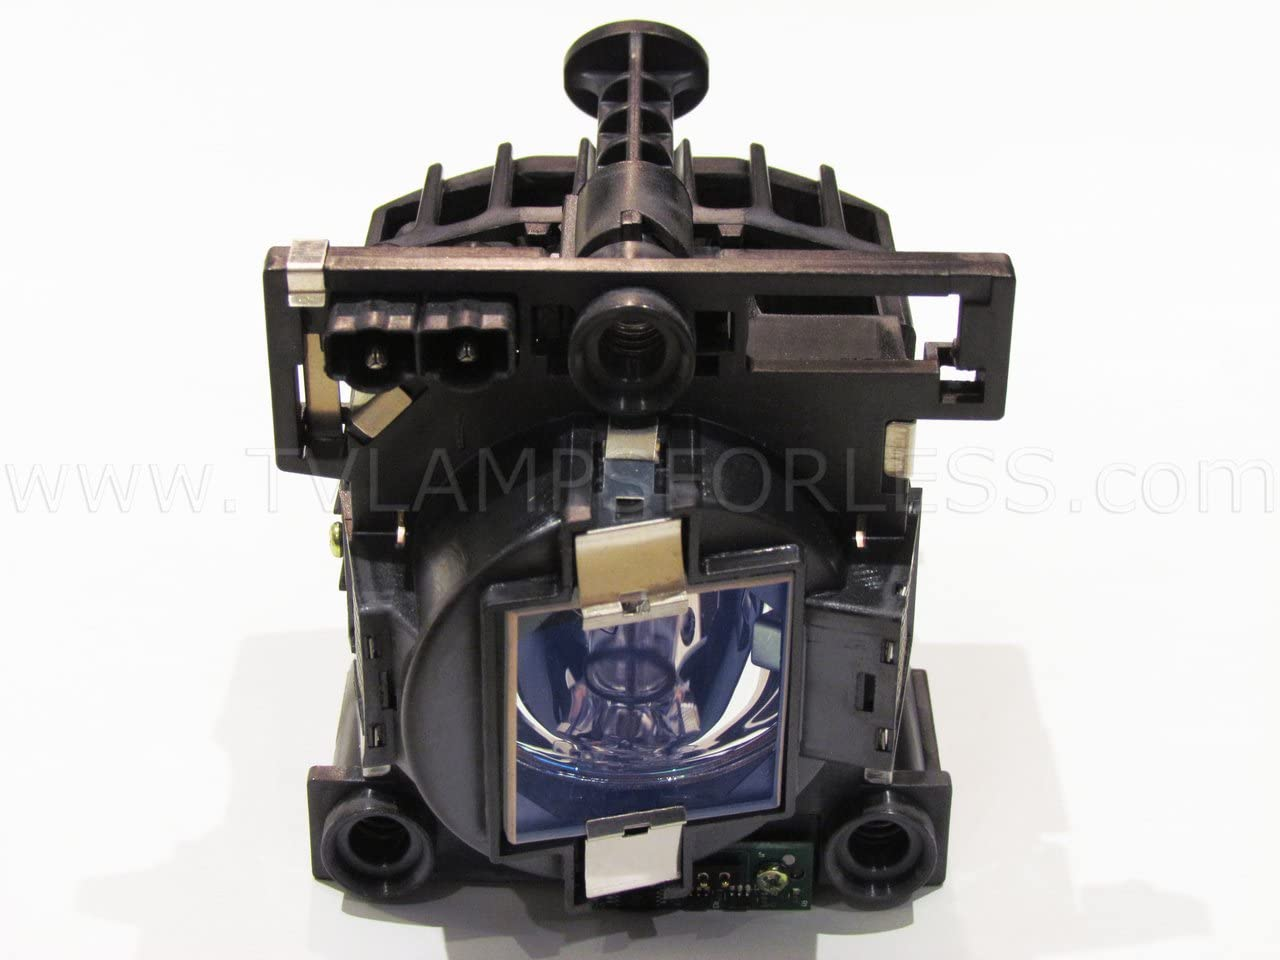 Original Philips Projector Replacement Lamp for ProjectionDesign 400-0400-00